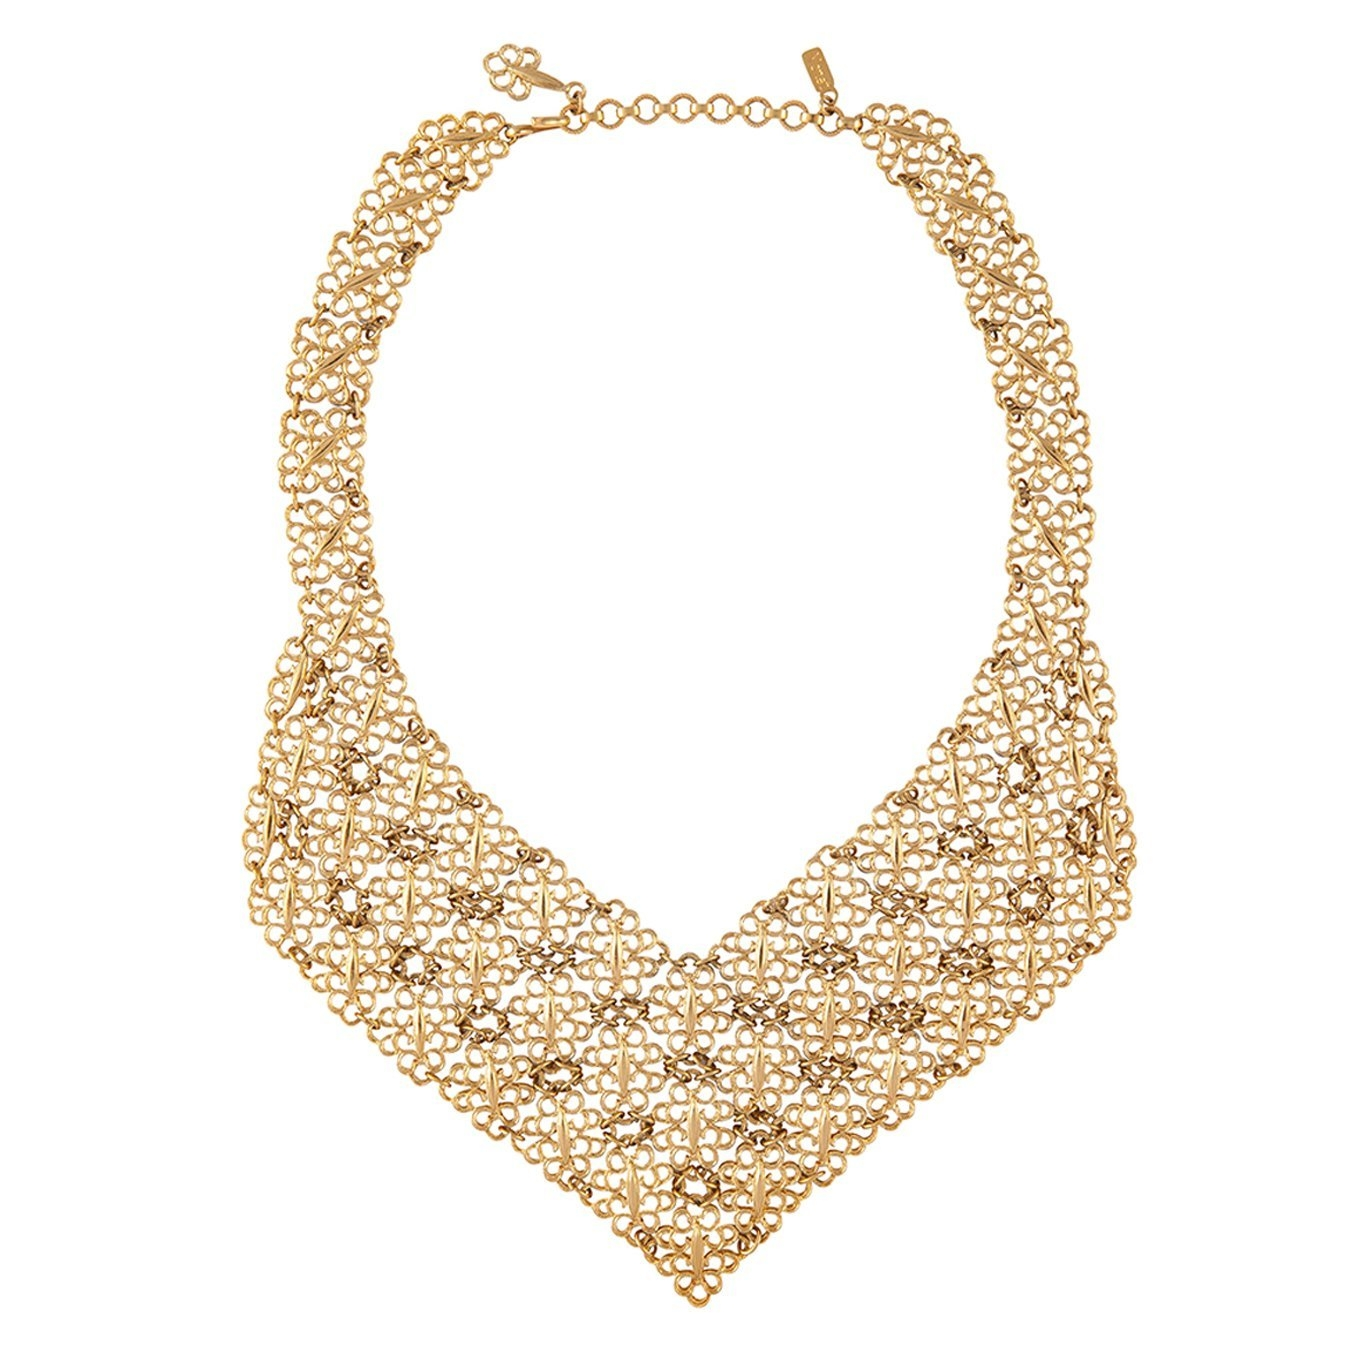 1970S VINTAGE MONET FILIGREE BIB NECKLACE